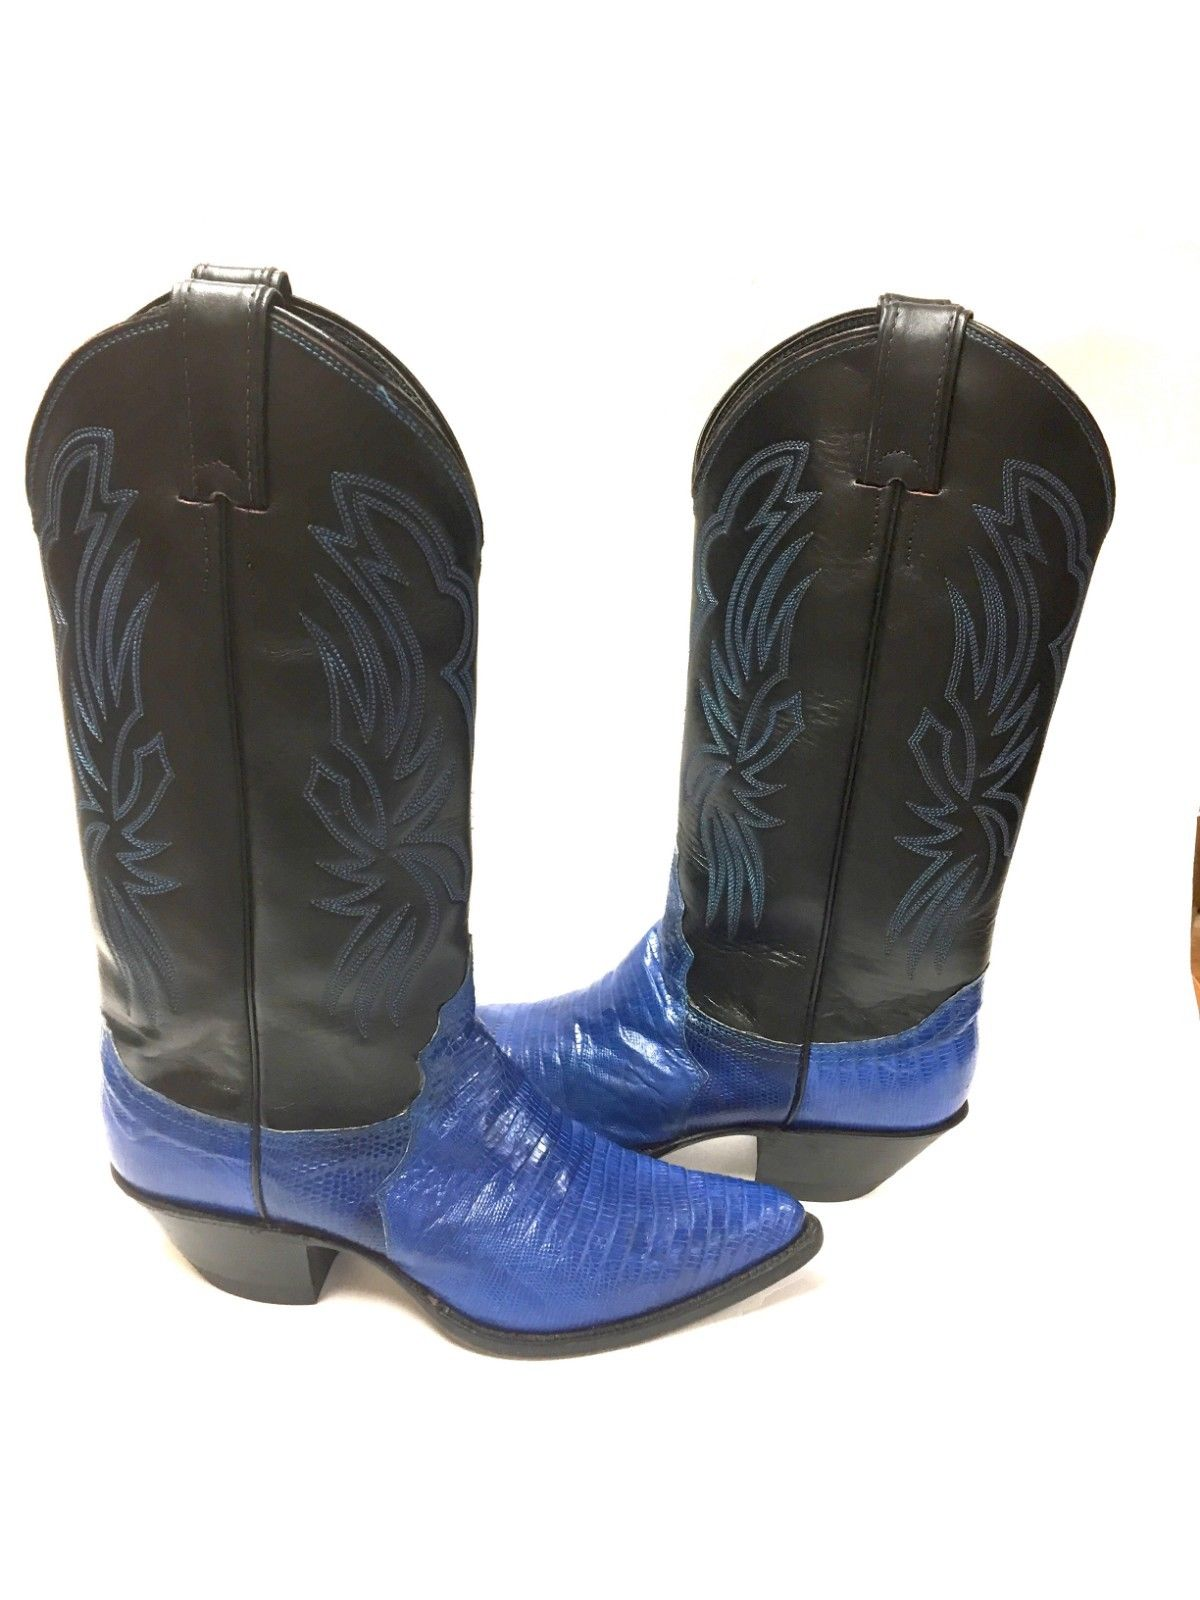 4a9e18cb7ee JUSTIN Black Leather Cobalt-Blue Lizard Skin Women Cowboy Pull-On Boots  Size: 7B